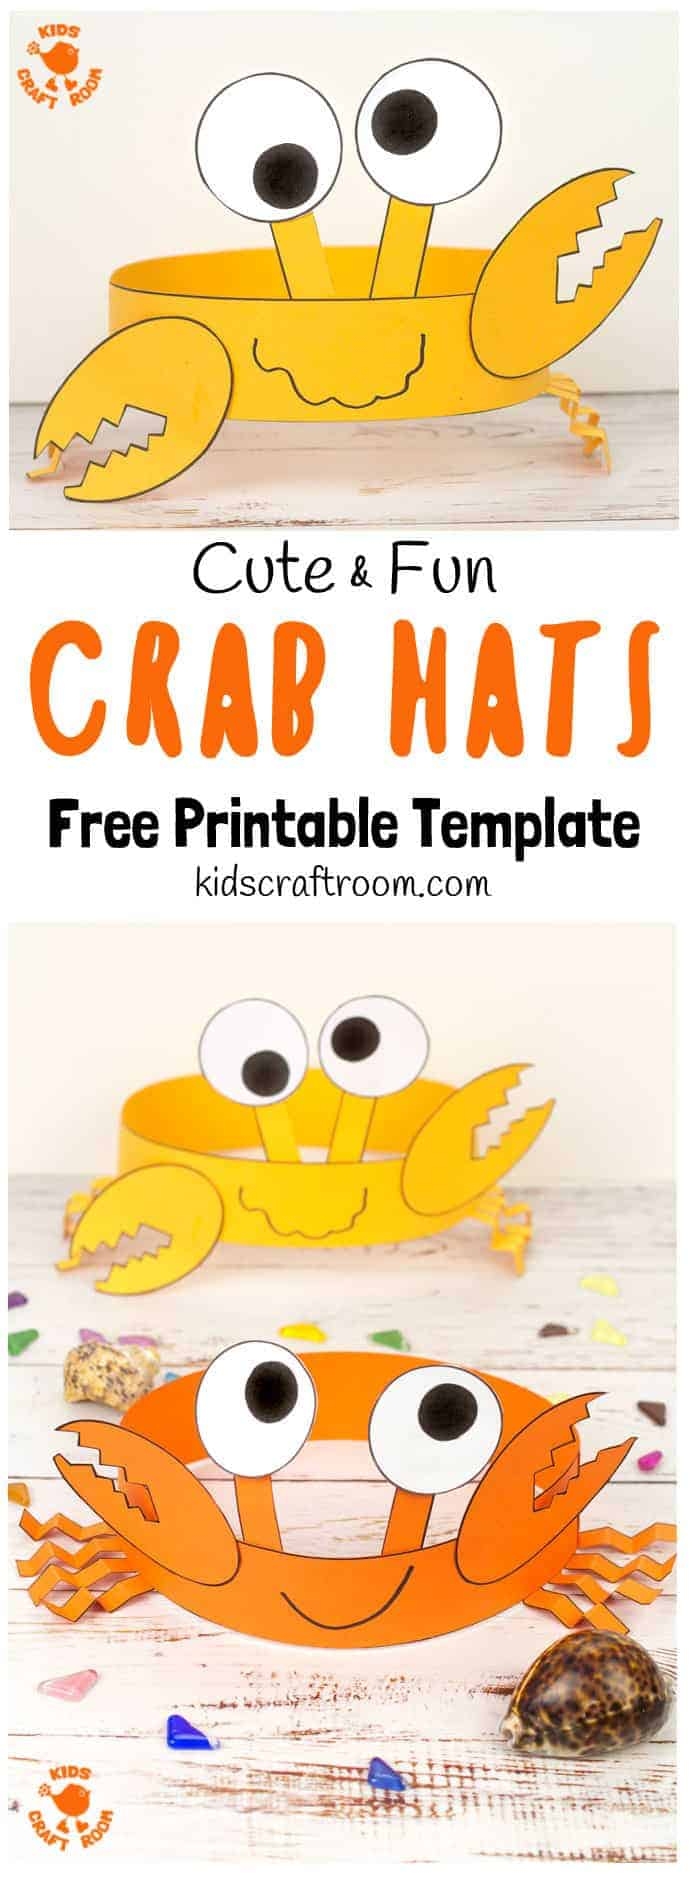 Whether you're heading to the beach or playing with sand and water at home, you'll want to make Cute And Fun Crab Hats! These homemade crab headbands are simply adorable and easy to make with our free printable template. Don't you just want to see the whole family wearing them right this instant?  So cute, so fun! #kidscrafts #crabs #crabcrafts #beachcrafts #oceancrafts #hats #headbands #printables #freeprintables #craftsforkids #summercrafts #kidscraftroom